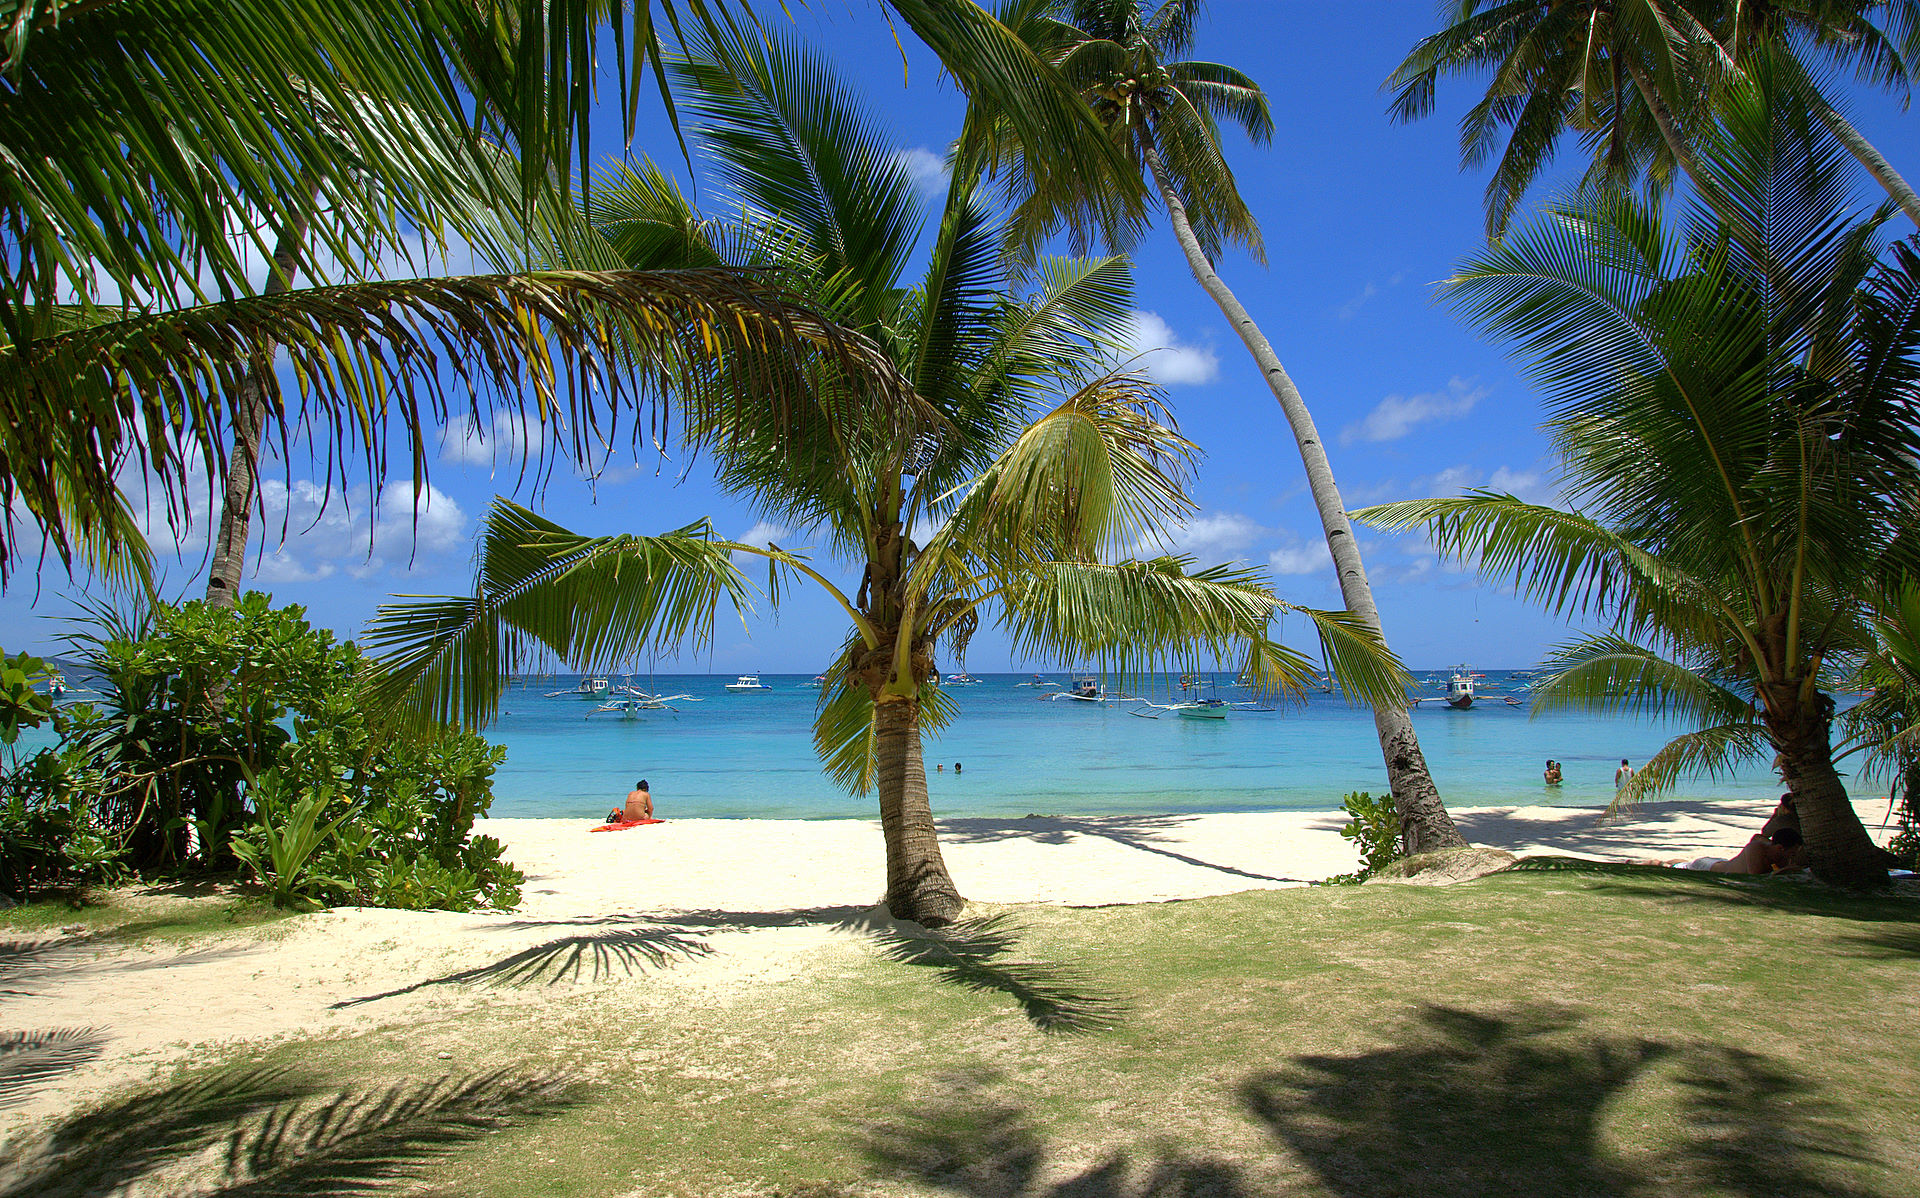 Hd Tropical Island Beach Paradise Wallpapers And Backgrounds: [50+] Tropical Ocean Scenery Wallpaper On WallpaperSafari